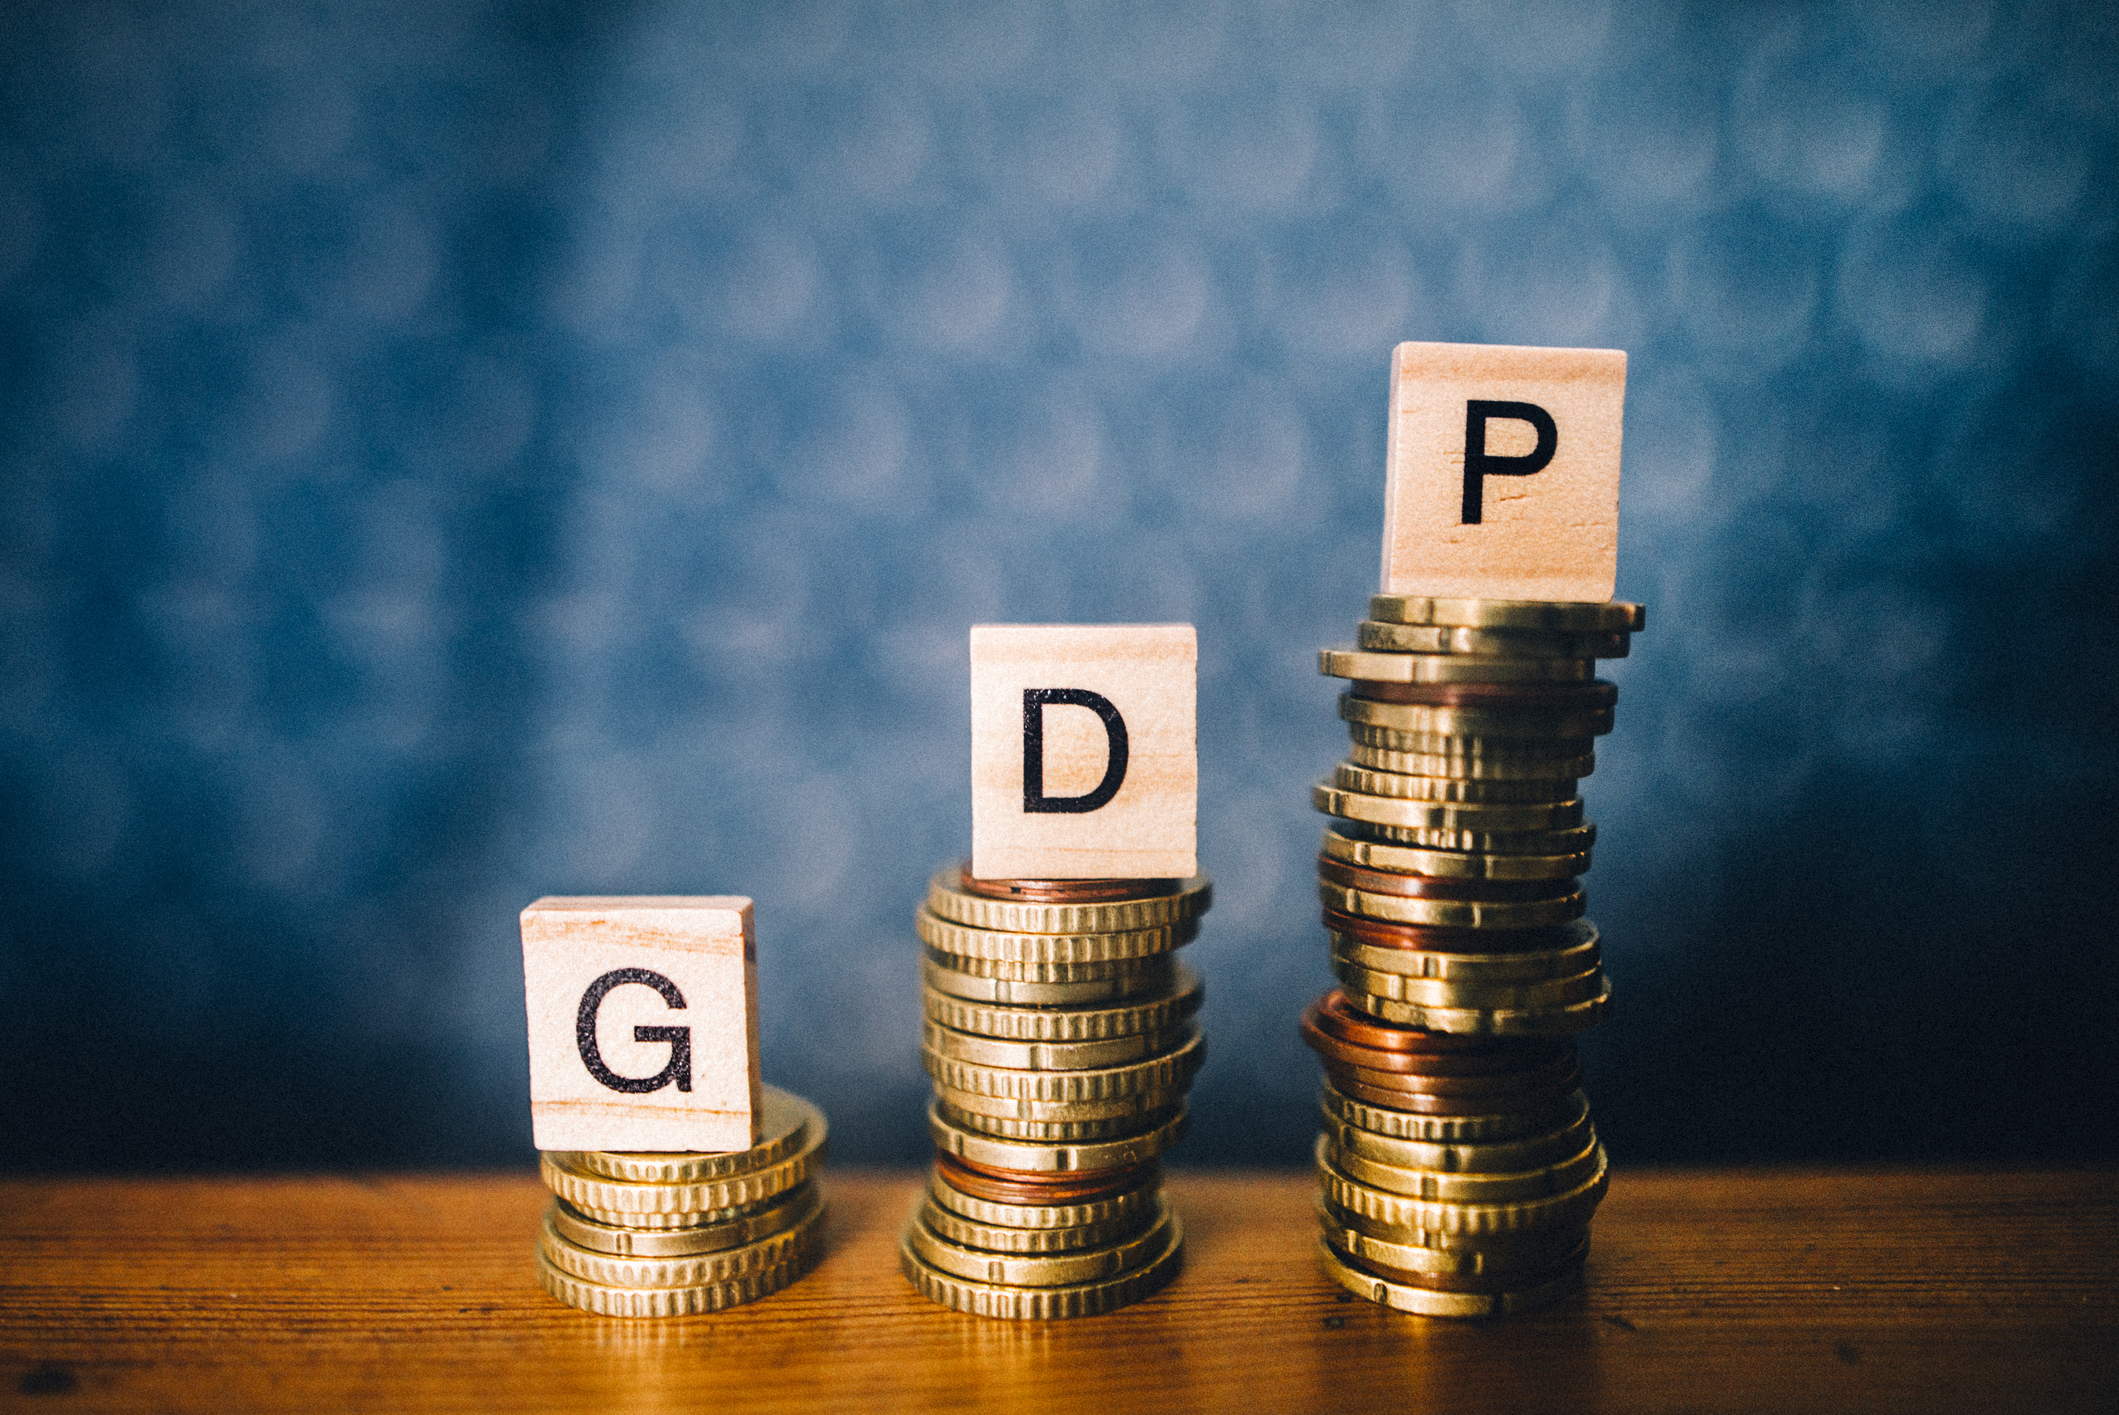 The RBI had marginally lowered the GDP growth projection for 2019-20 to 6.9 per cent from 7 per cent projected earlier in the June policy, and underlined the need for addressing growth concerns by boosting aggregate demand.